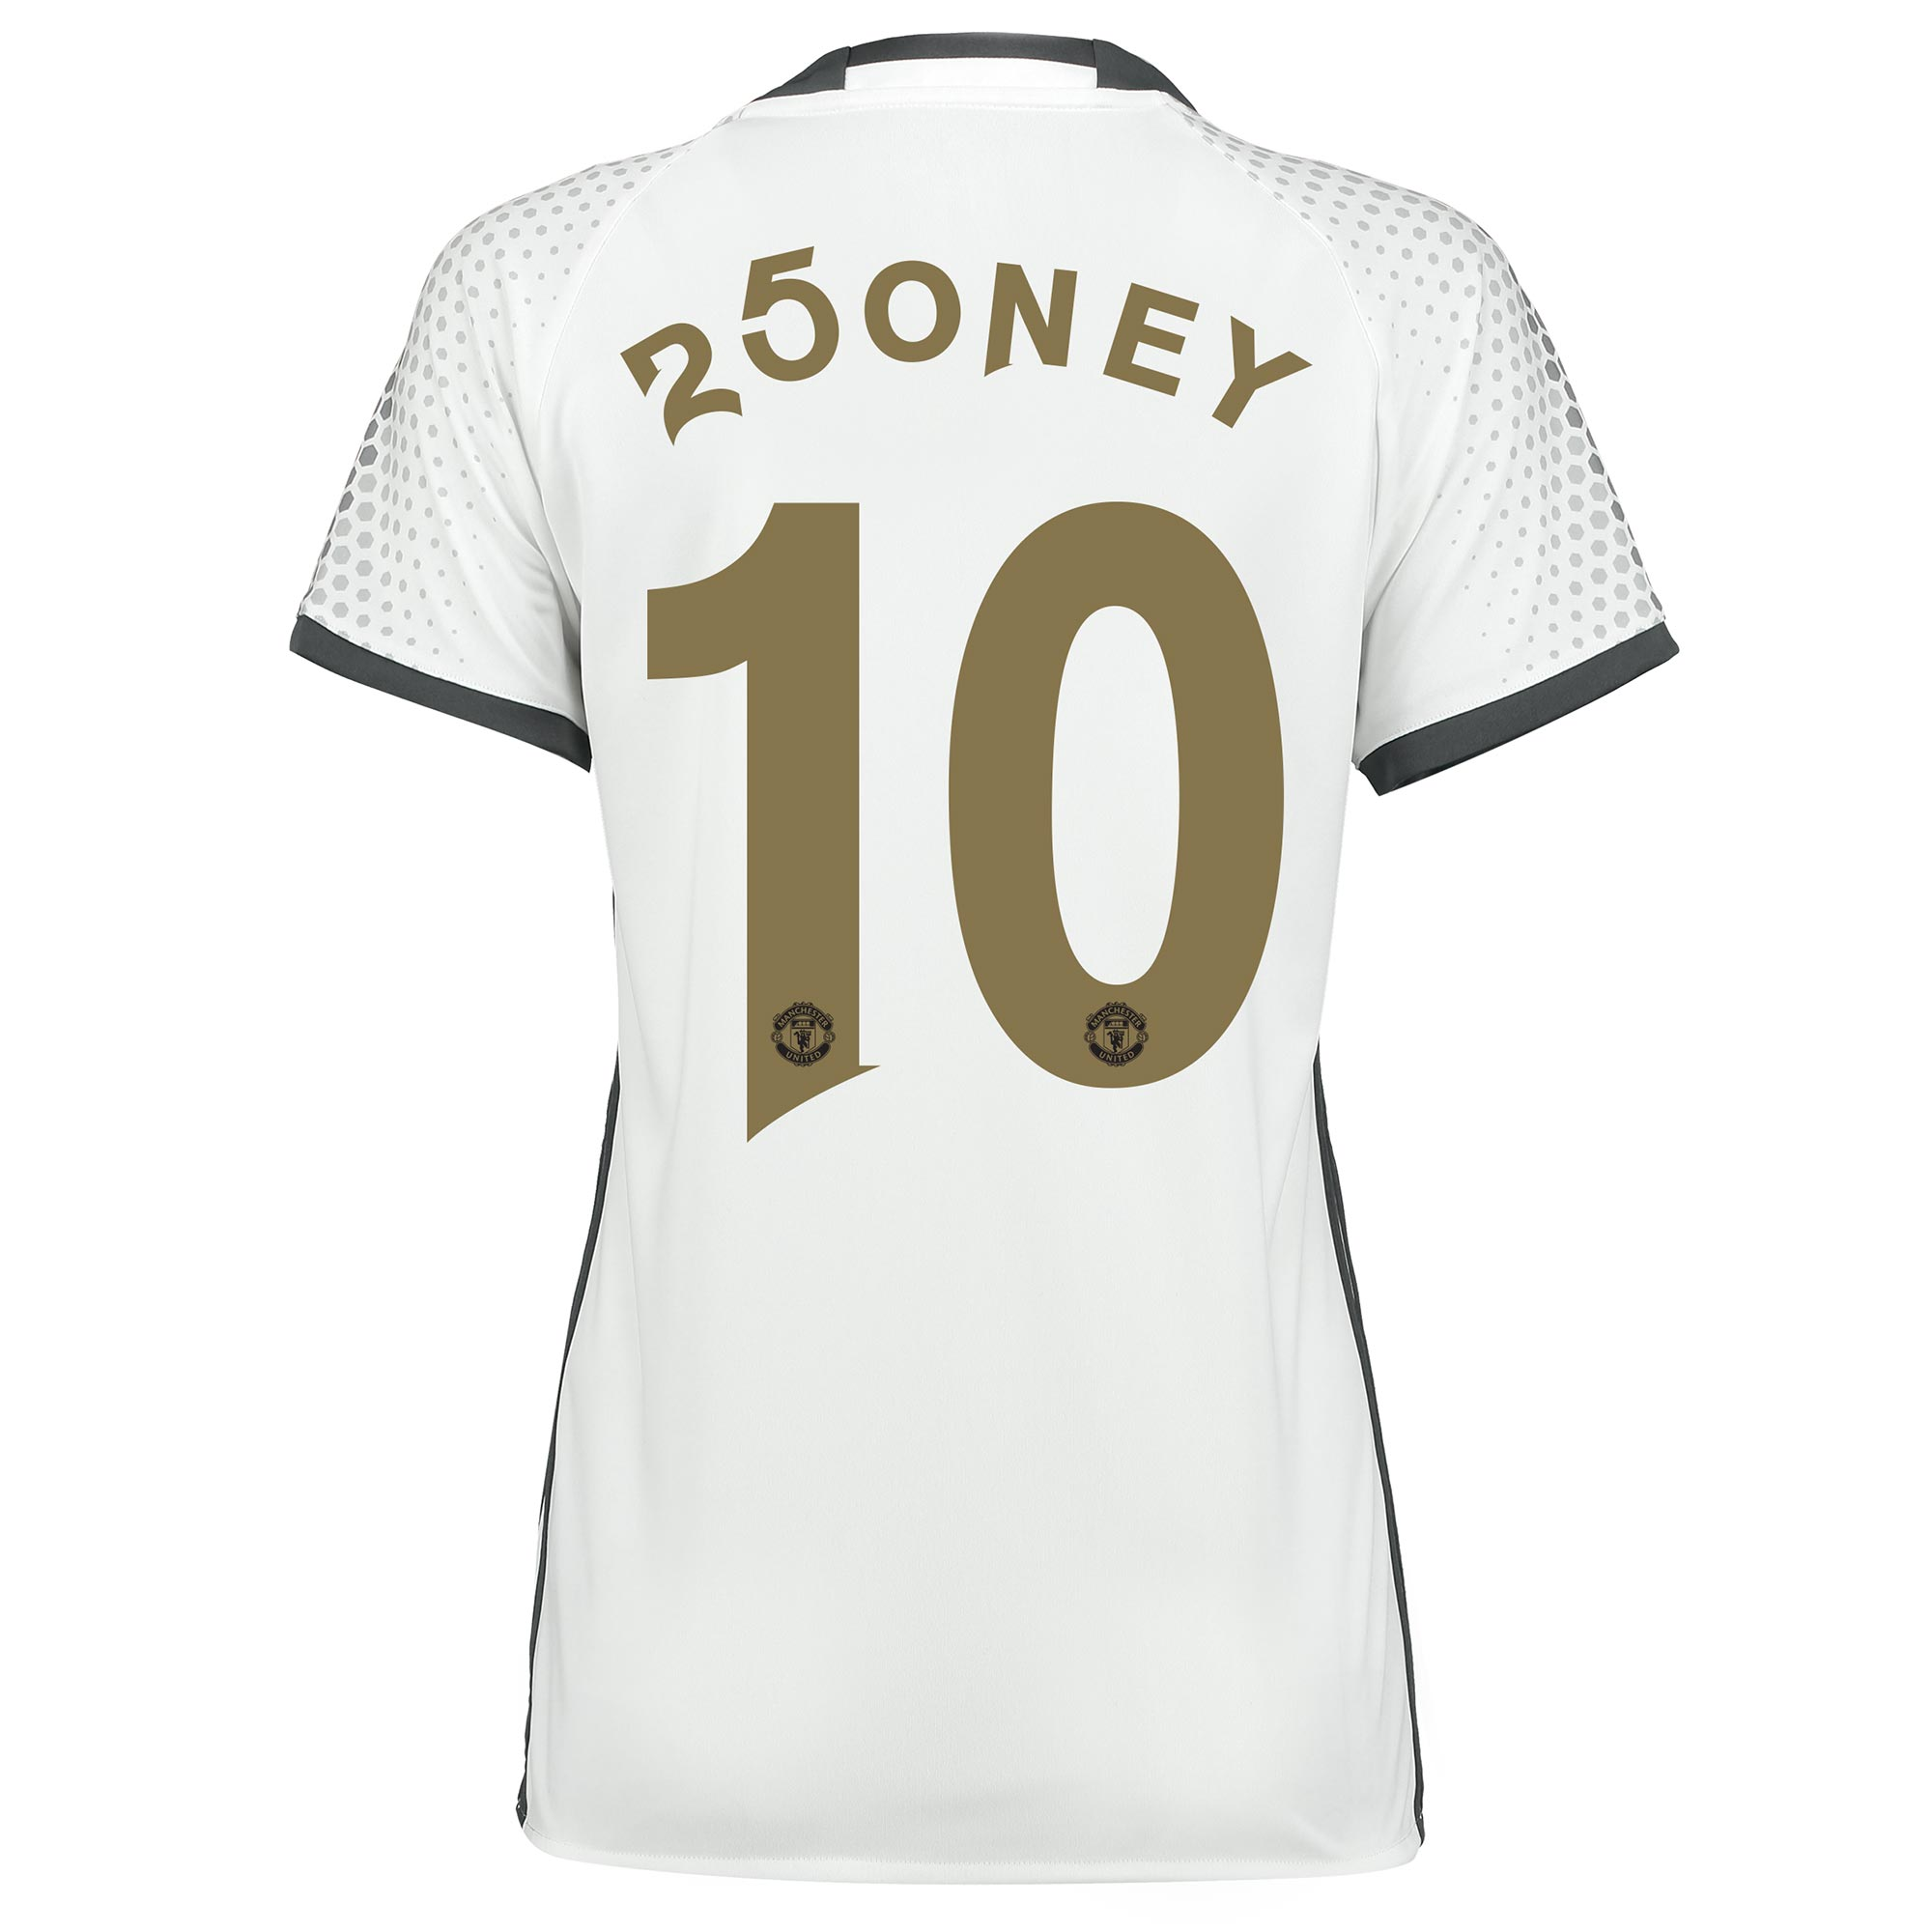 Manchester United Third Shirt 2016-17 - Womens with 250ney 10 printing